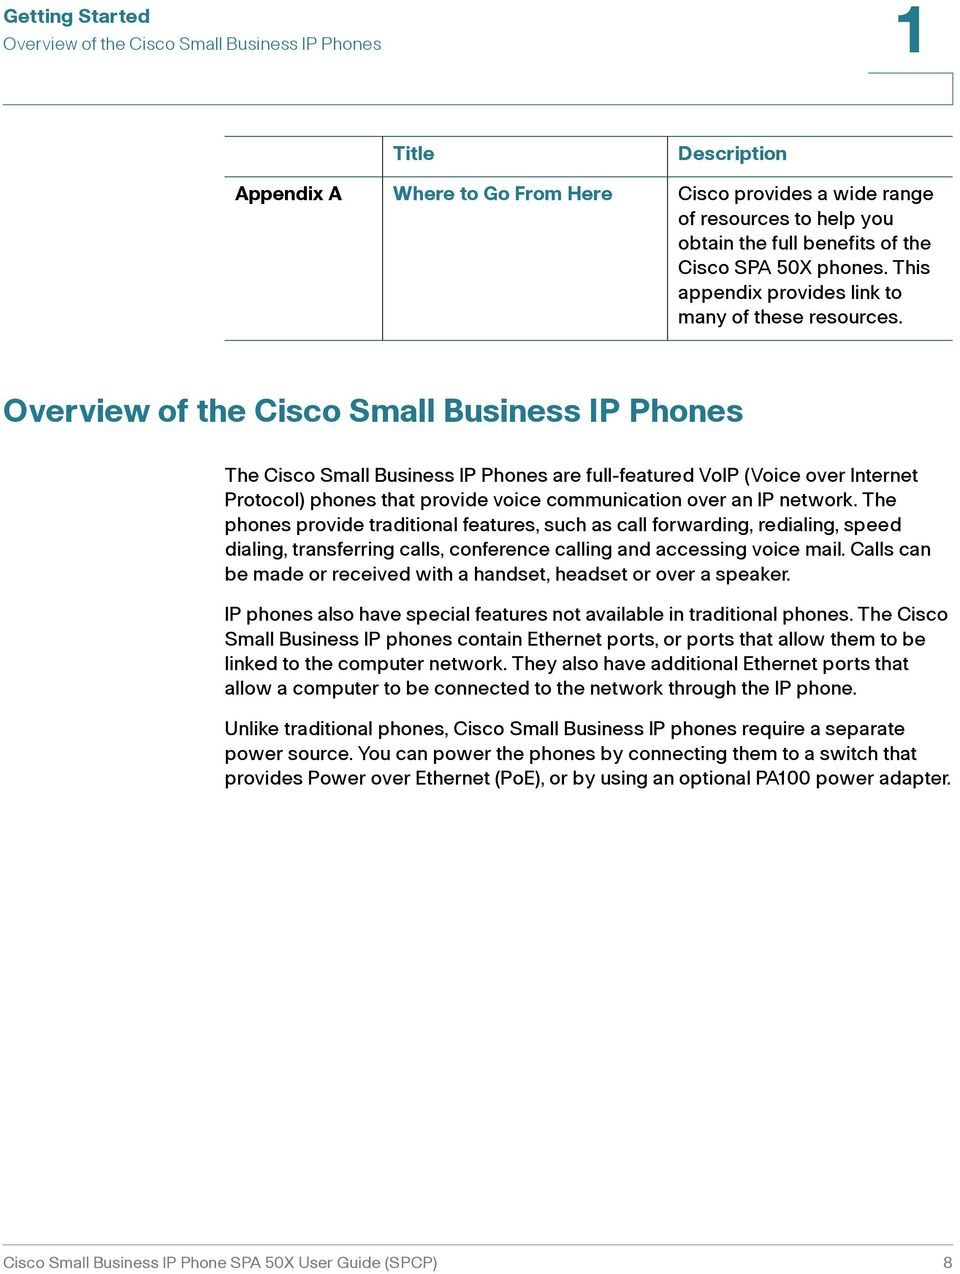 Overview of the Cisco Small Business IP Phones The Cisco Small Business IP Phones are full-featured VoIP (Voice over Internet Protocol) phones that provide voice communication over an IP network.